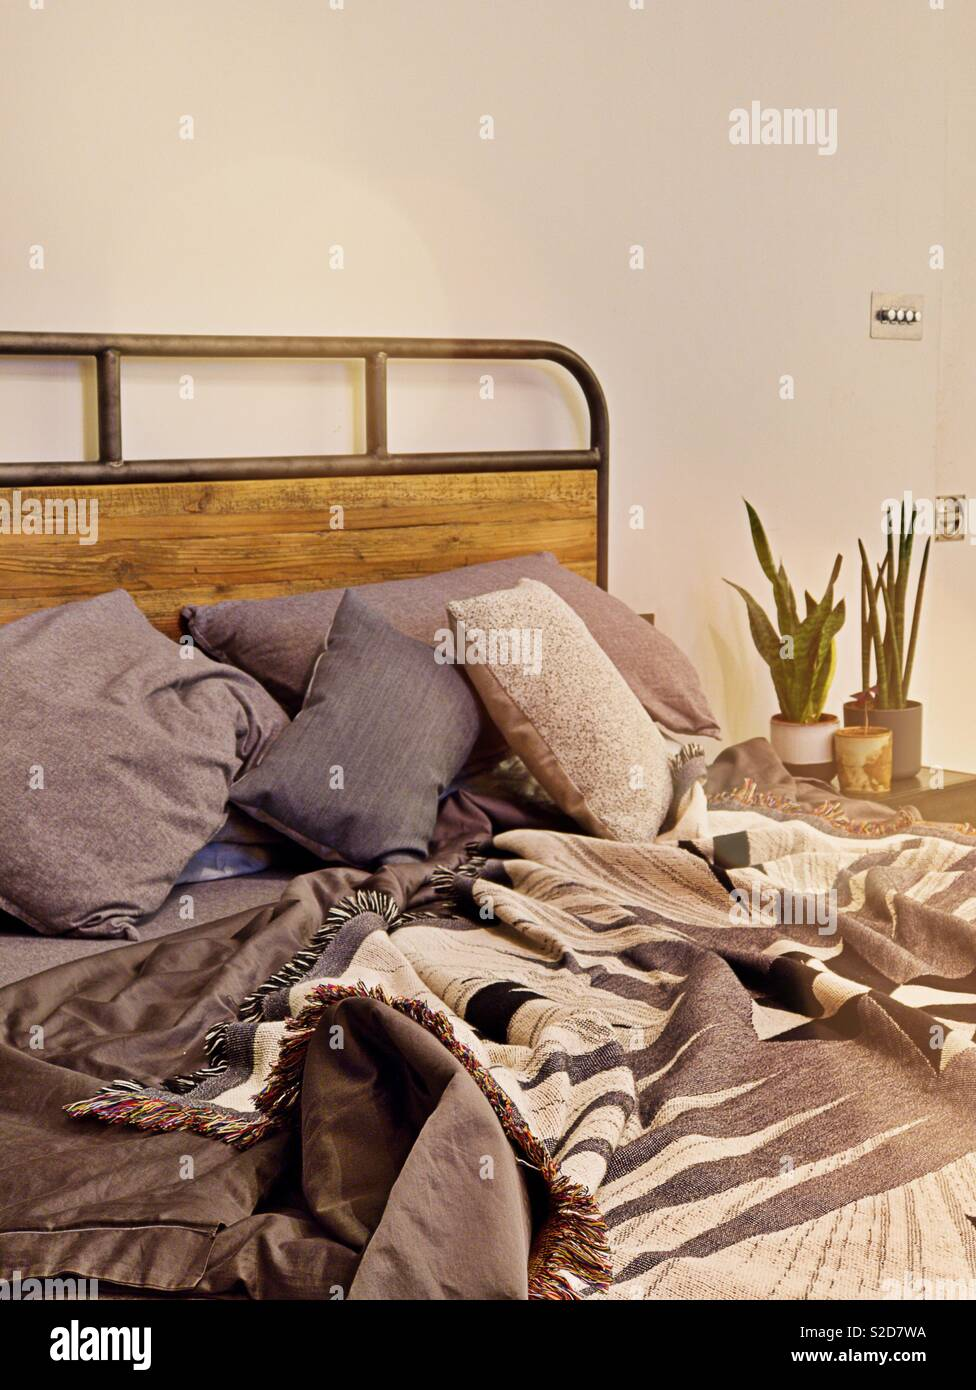 Cosy bed with grey and navy bedding and copy space above in loft style warehouse apartment with houseplants on bedside. Minimalist. - Stock Image